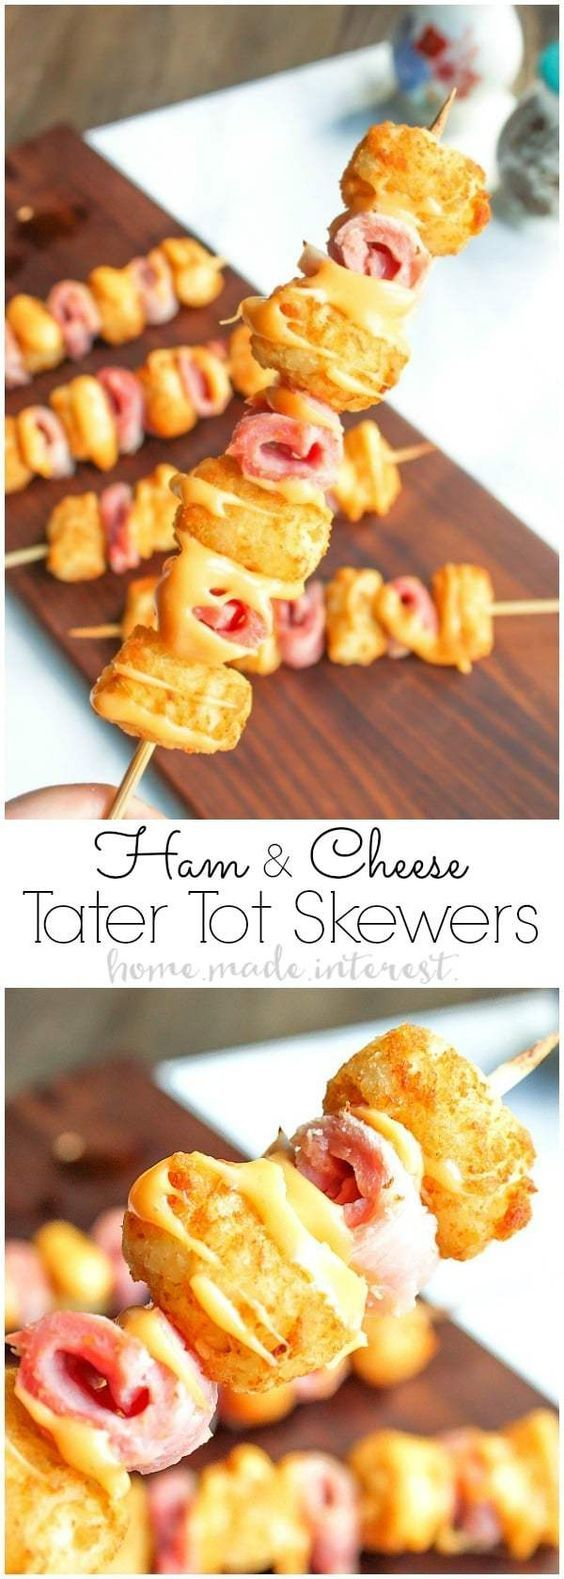 100+ Quick Super Bowl Appetizers Recipes To Enjoy on the Game Night - Hike n Dip